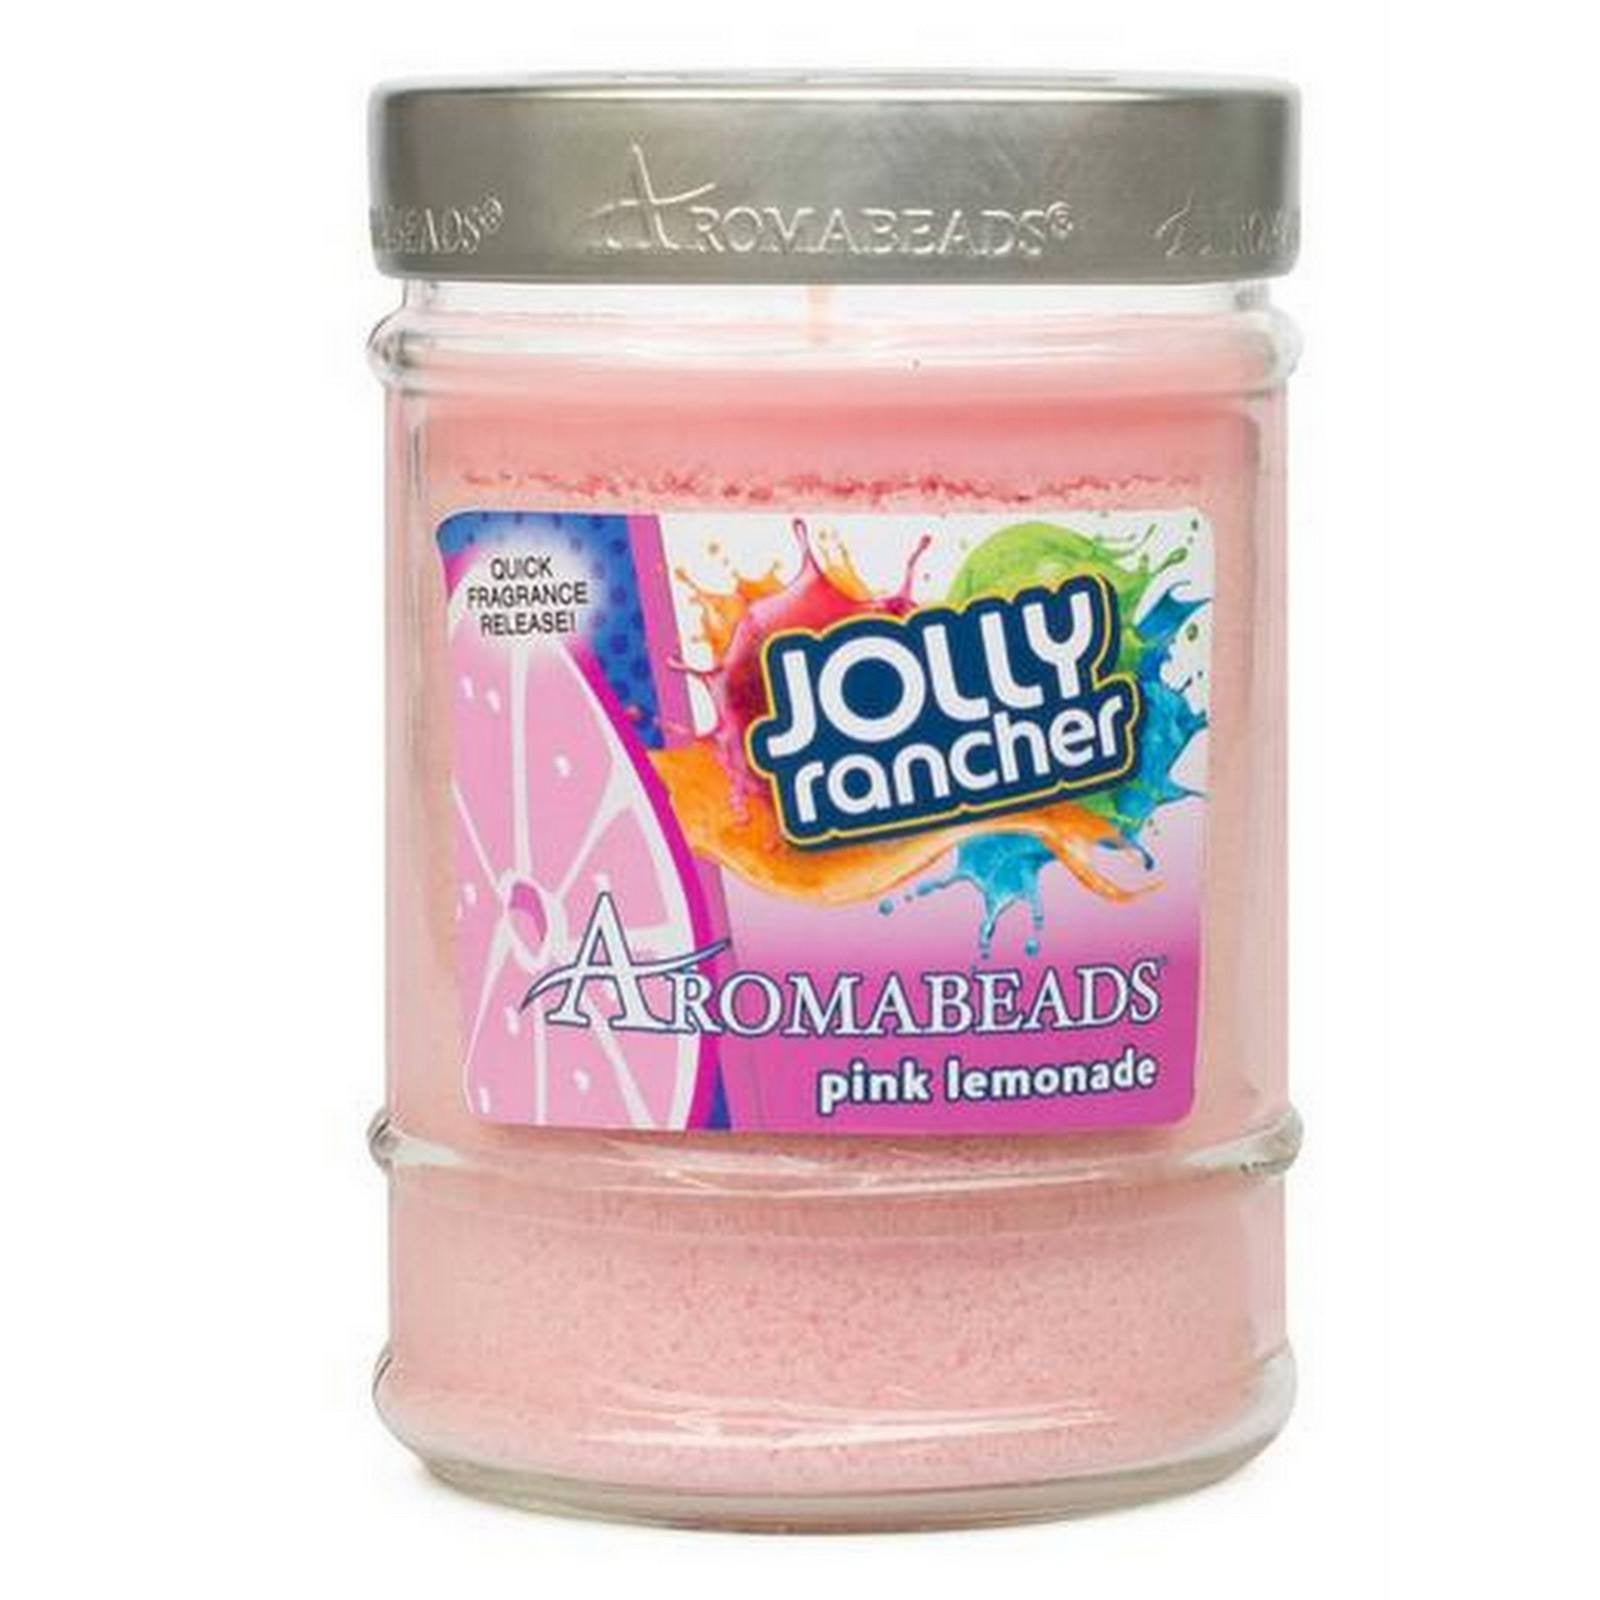 Jolly Rancher Pink Lemonade Scented Aromabeads Canister Candle - Candlemart.com